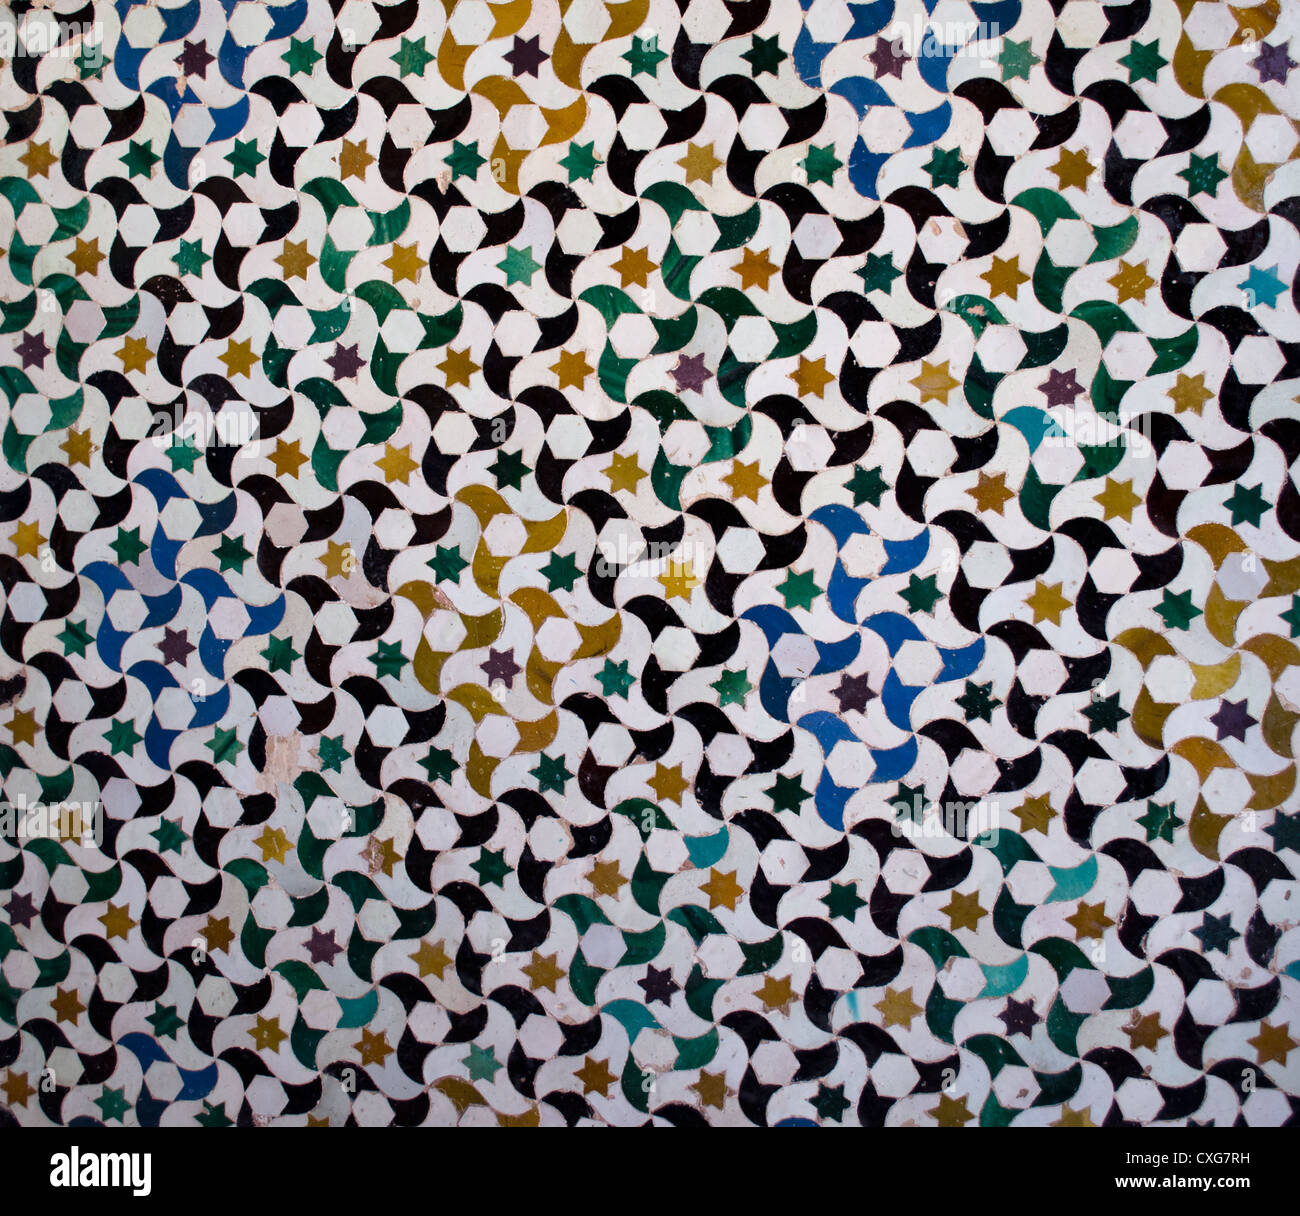 Pattern or texture of ceramic tiles mosaic found in the Alhambra, in ...